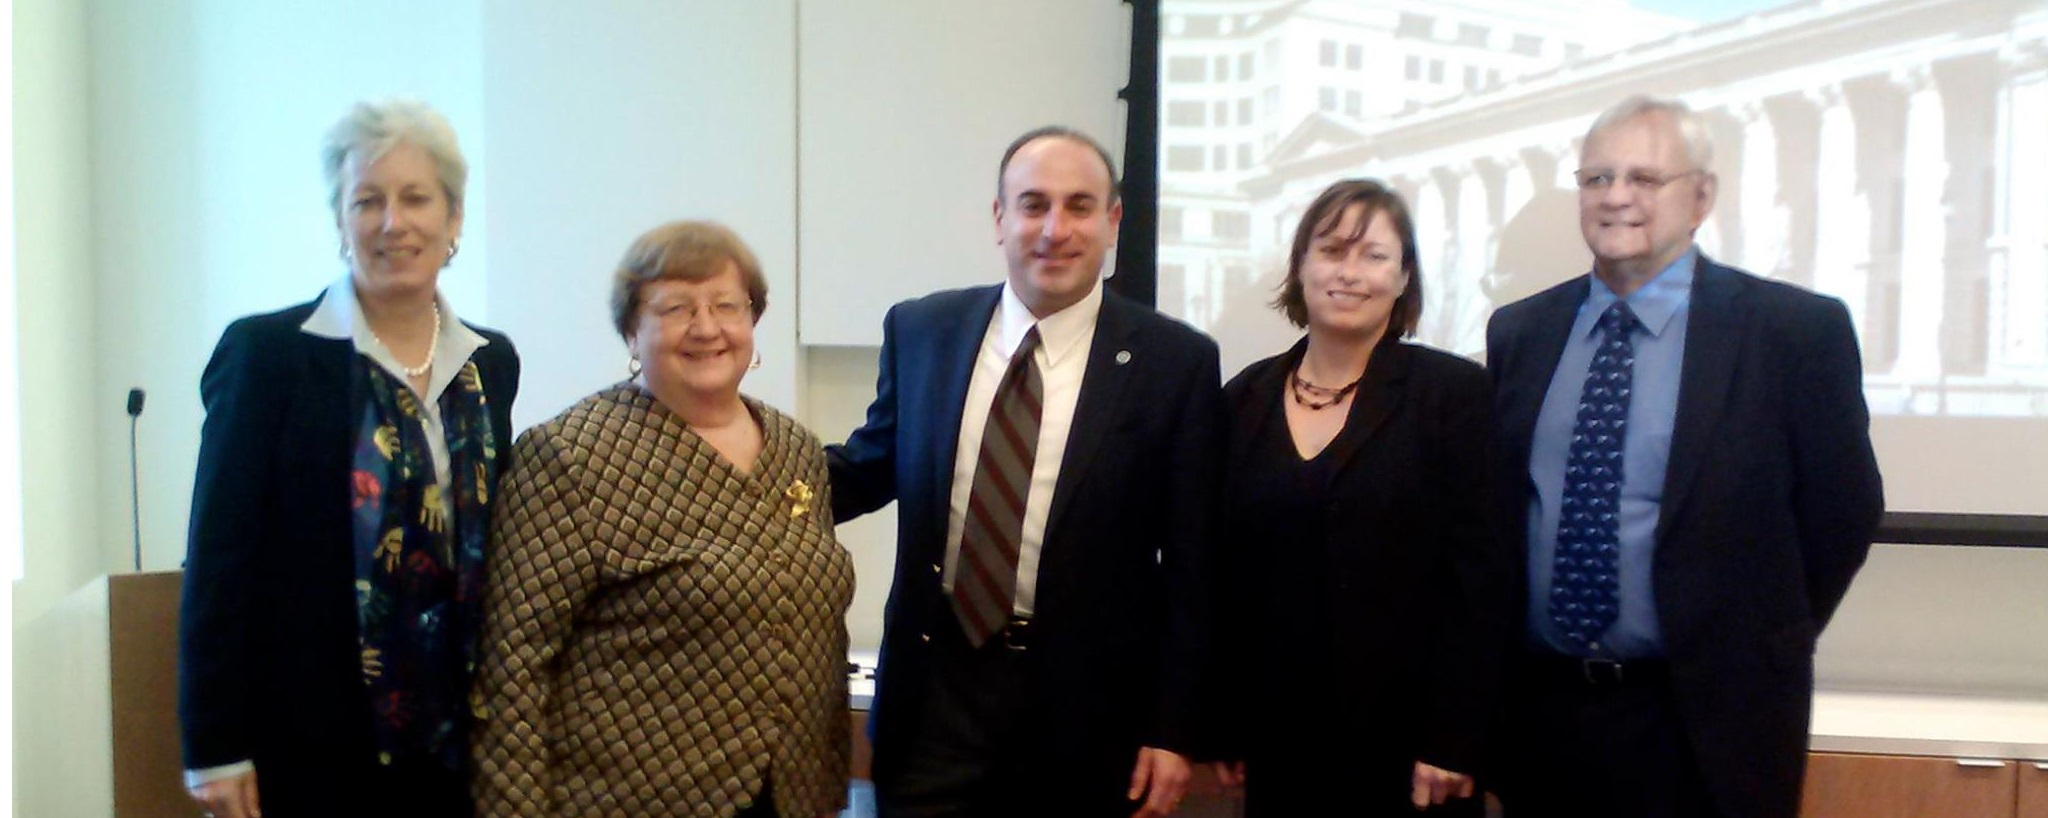 Presenters at this morning's Judicial Roundtable, co-hosted by ADDA and the Delaware Center for Justice. From left: Judge Jan Jurden, Attorney Robert Tudisco, Dr. Janet Kramer, Dr.Stephanie Moulton Sarkis, and Judge David Admire.